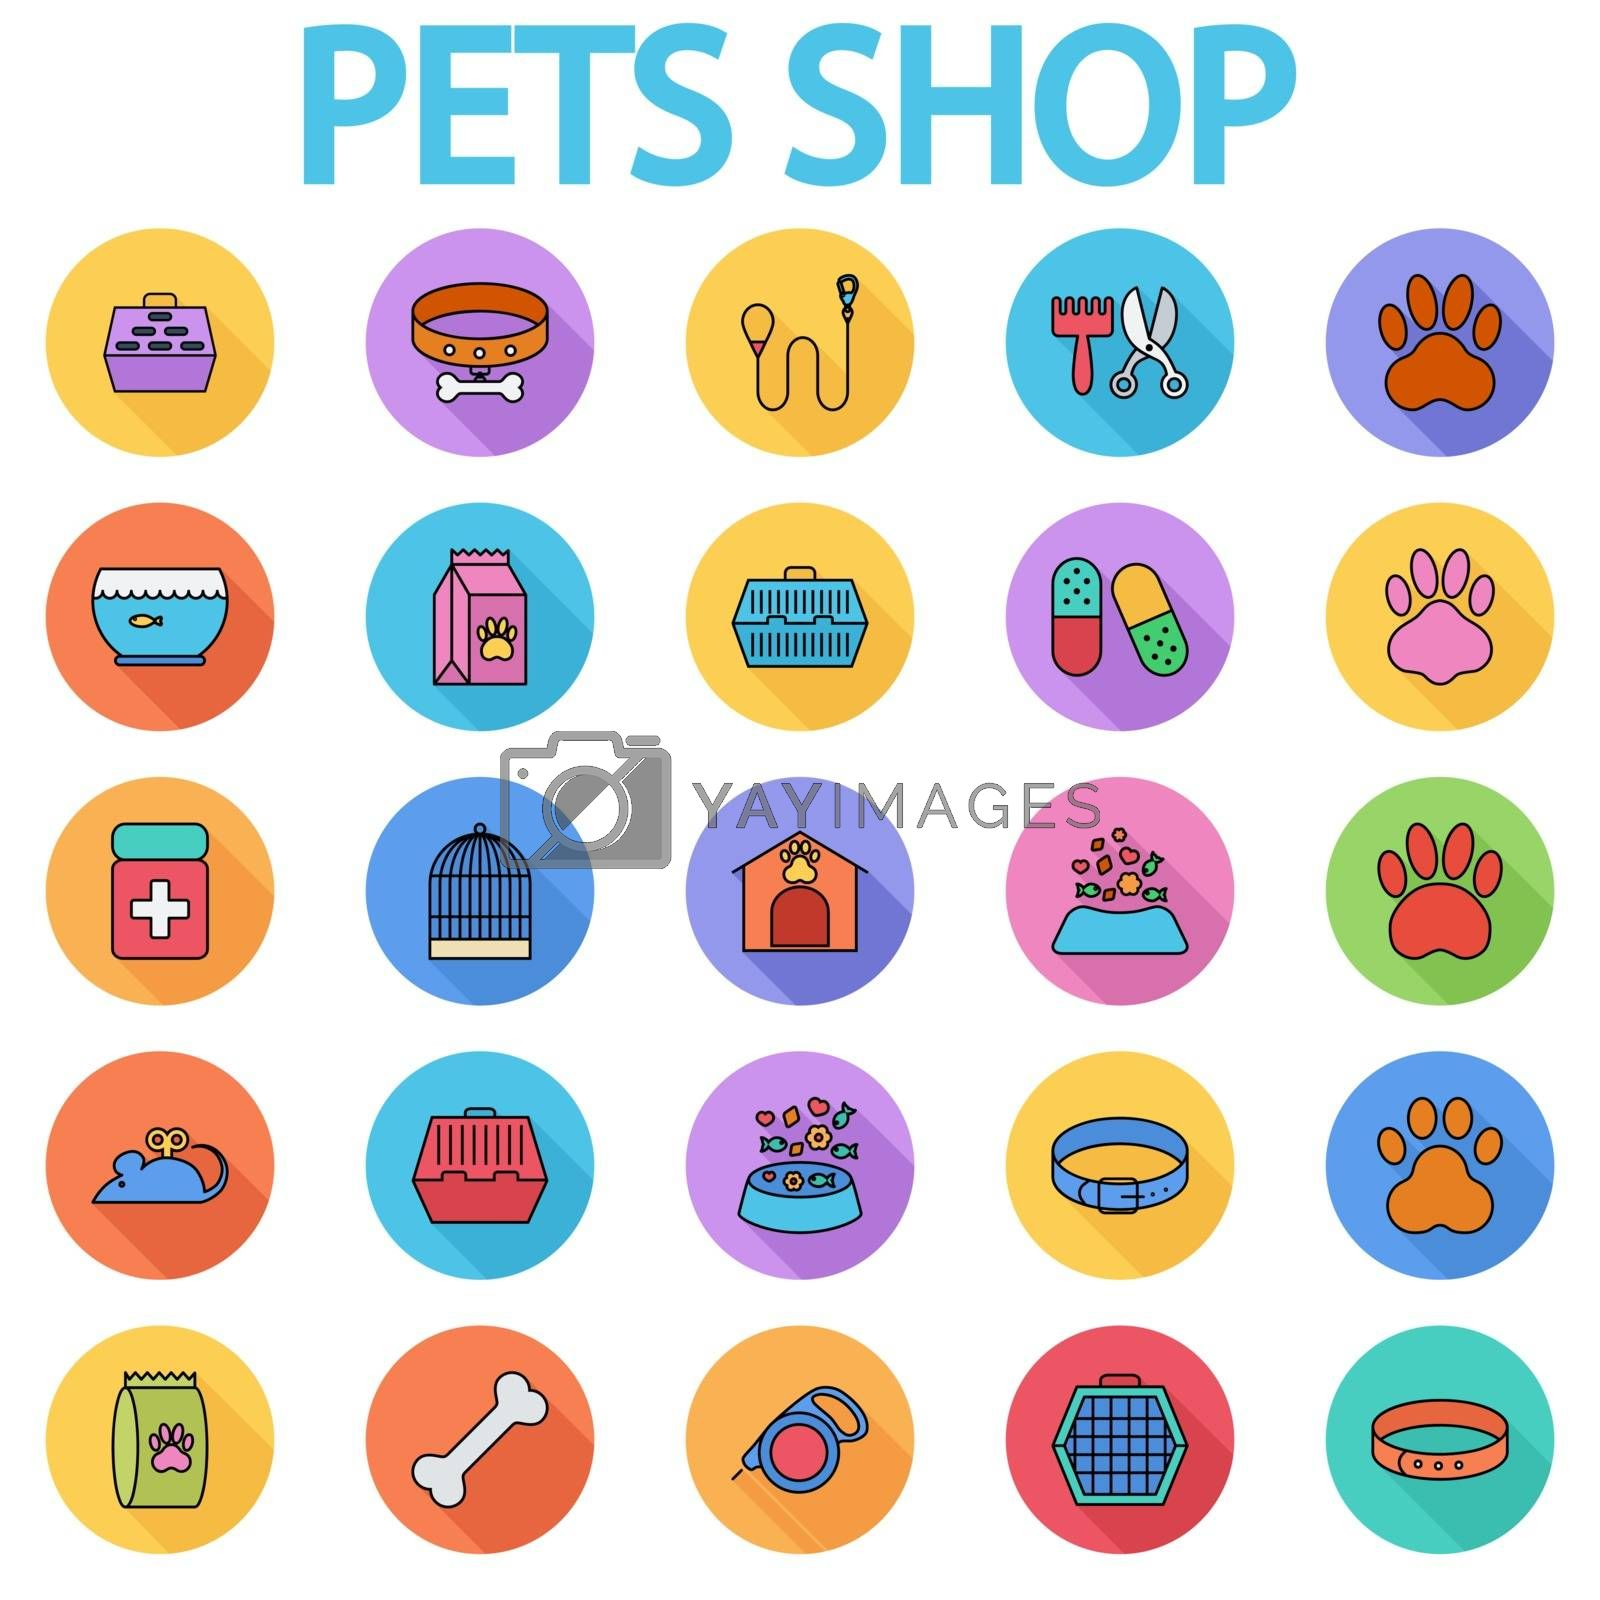 Pets shop icons set. Flat vector related icon set with long shadow for web and mobile applications. It can be used as - logo, pictogram, icon, infographic element. Vector Illustration.